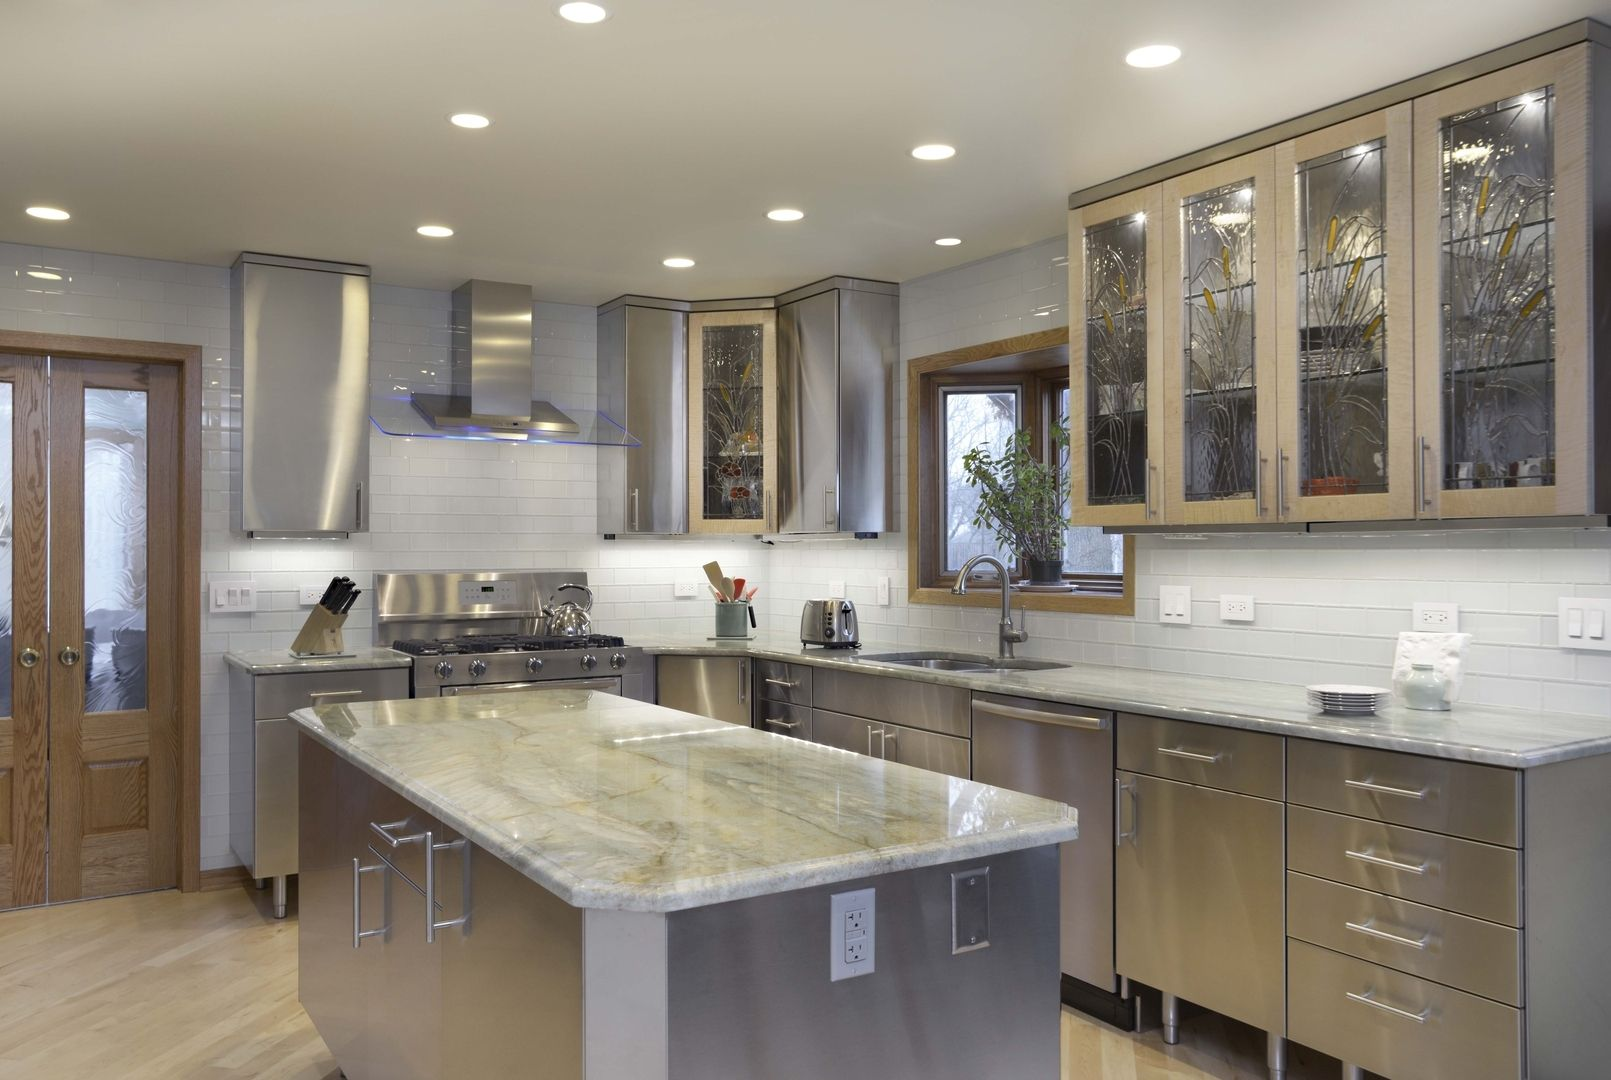 Related Image Metal Kitchen Cabinets Modern Kitchen Design Kitchen Design Trends